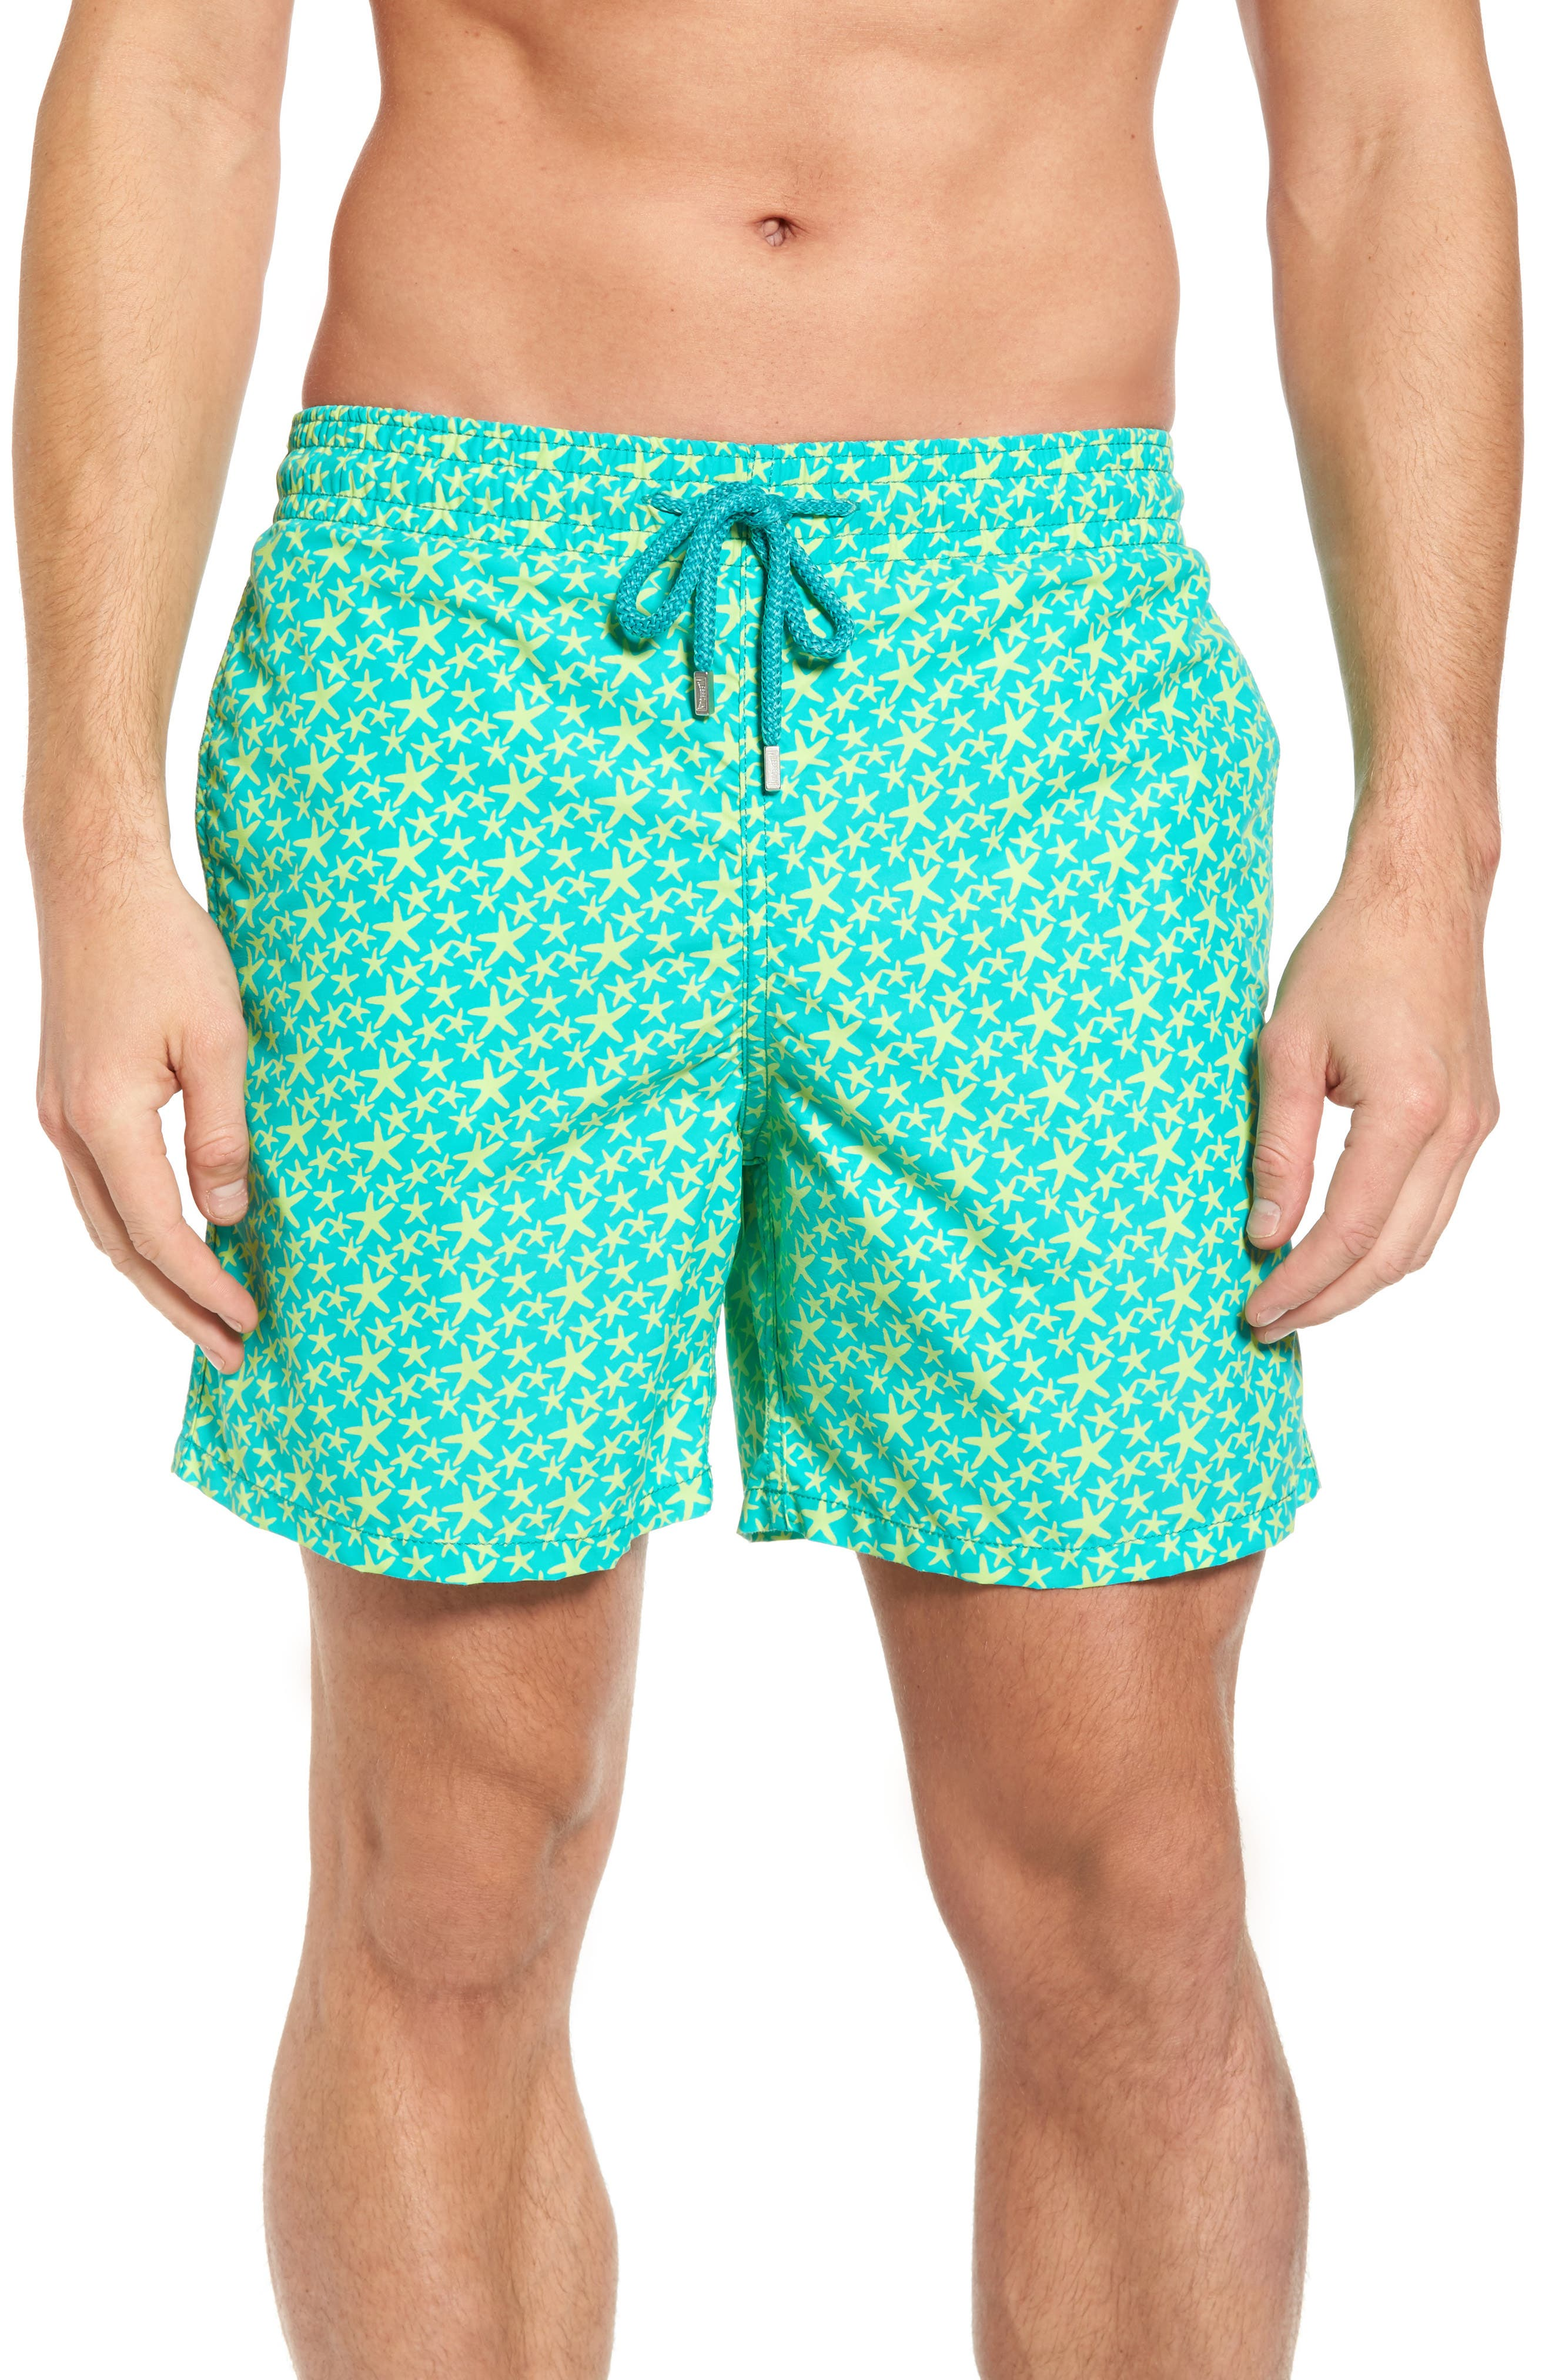 Micro Starlets Swim Trunks, Main, color, 348